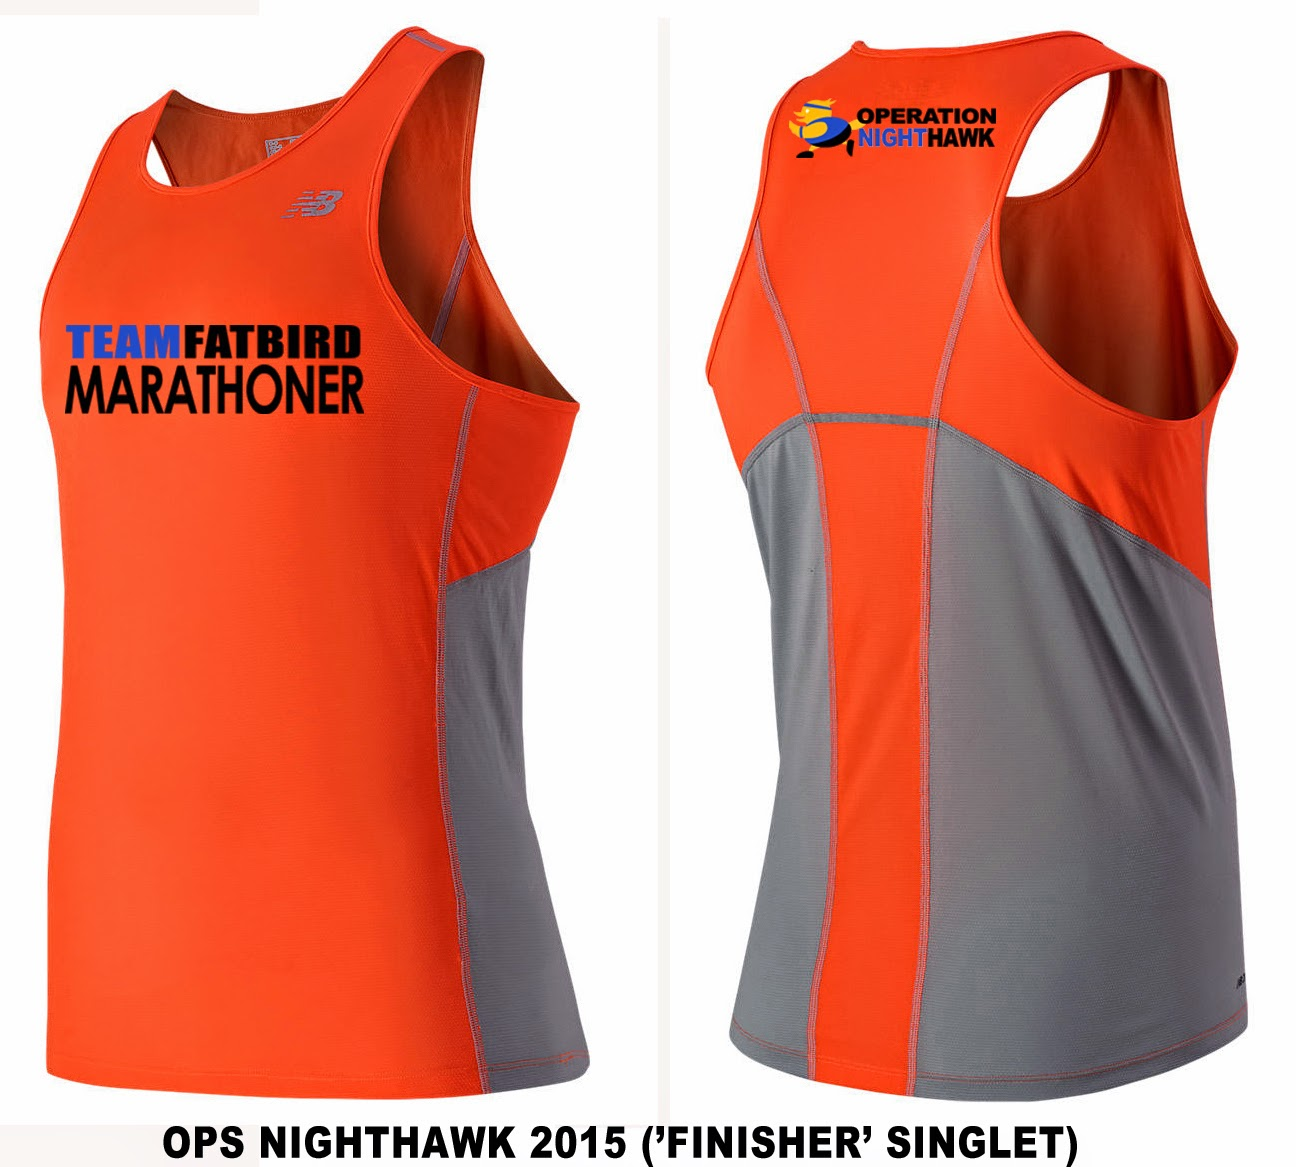 OPS NIGHTHAWK 2015: Secure Your Place & Make A Mark!